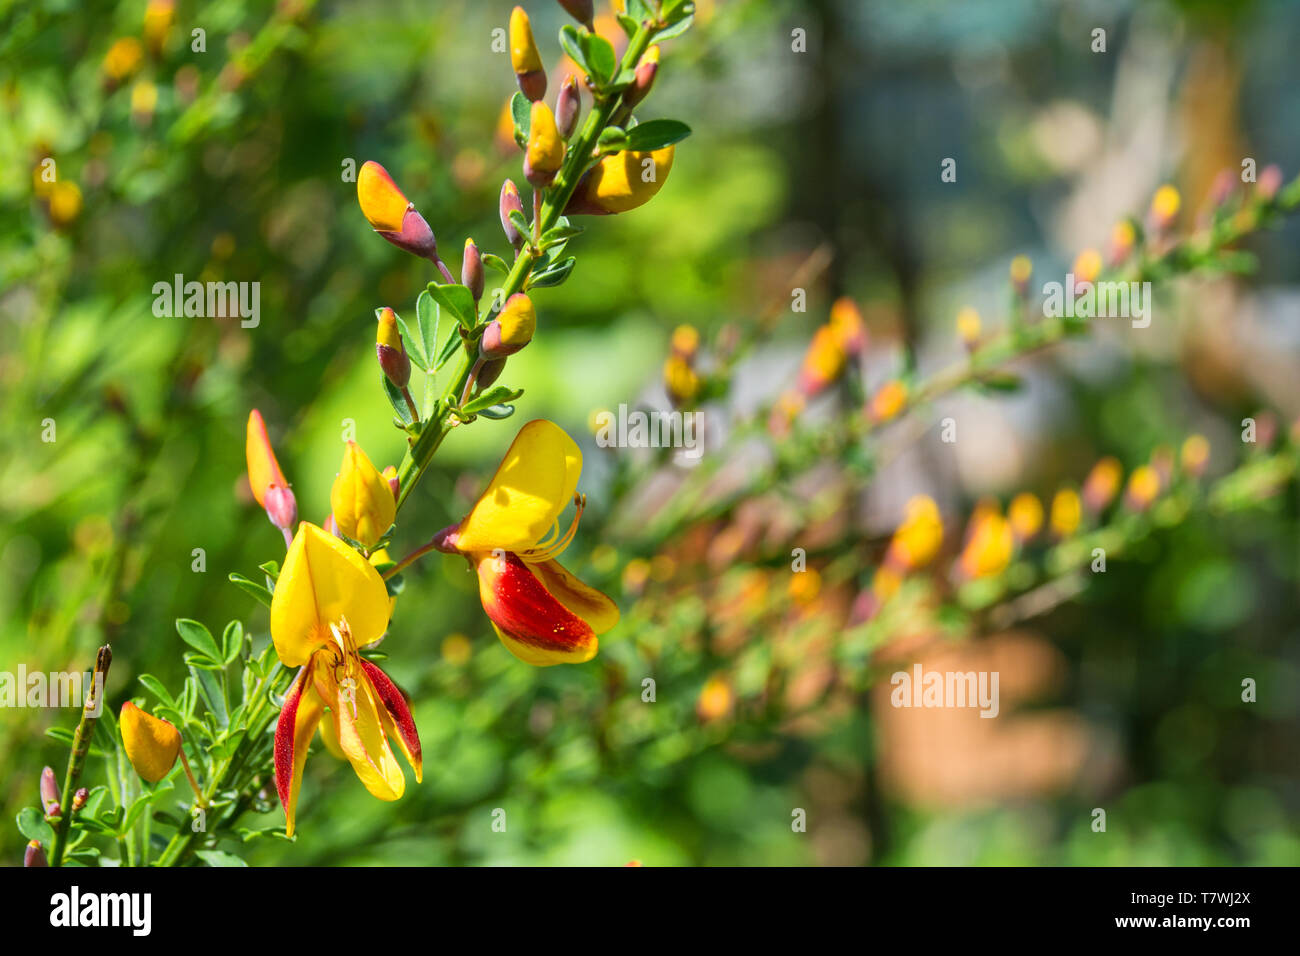 Yellow And Red Flowers On A Cytisus Scoparius A Perennial